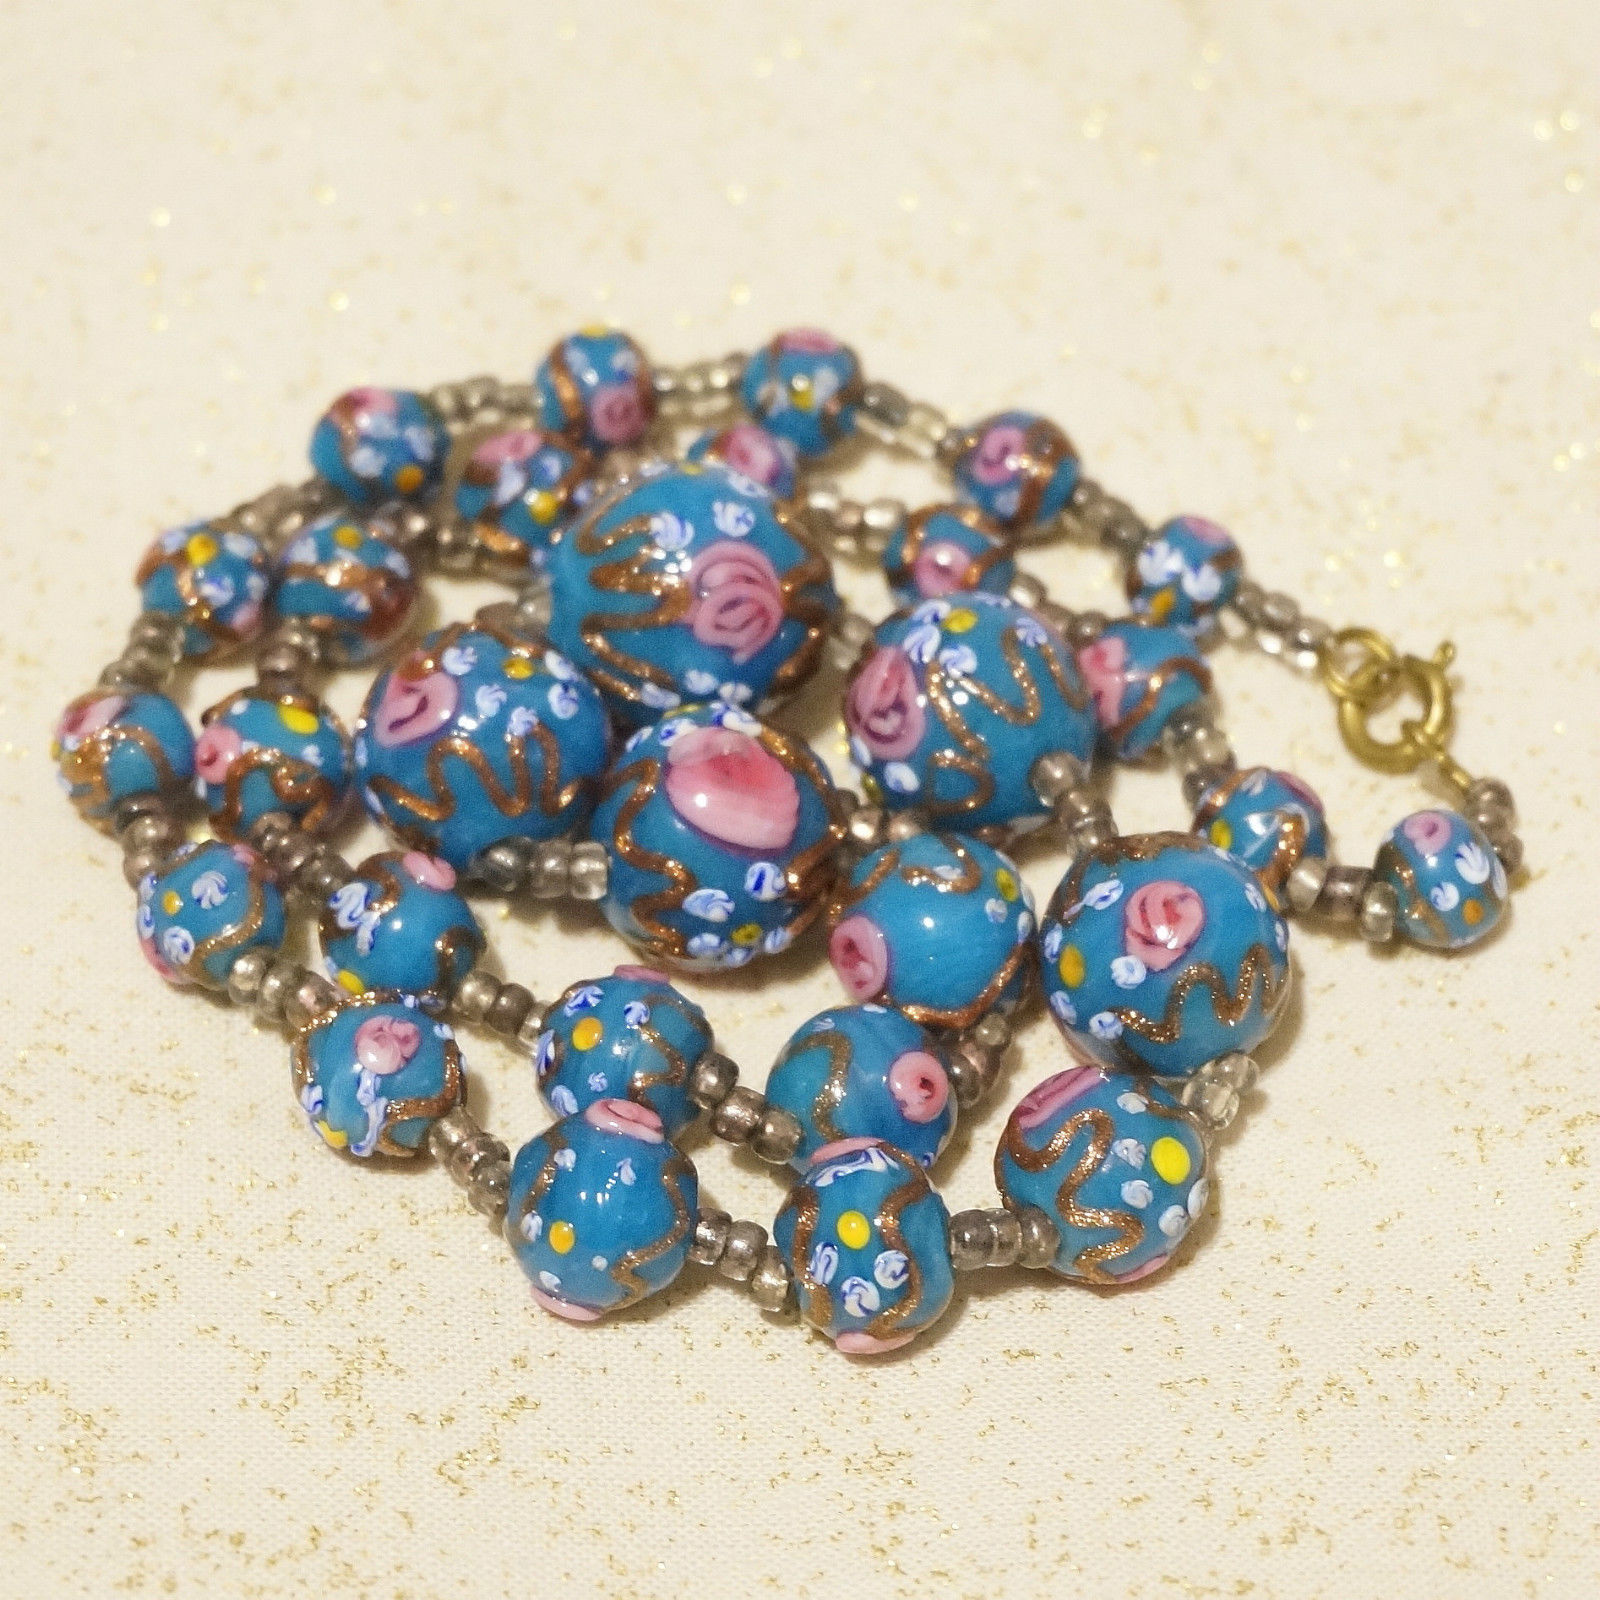 Special Offer Antique Venetian Glass Beads Necklace Up To 78 Off